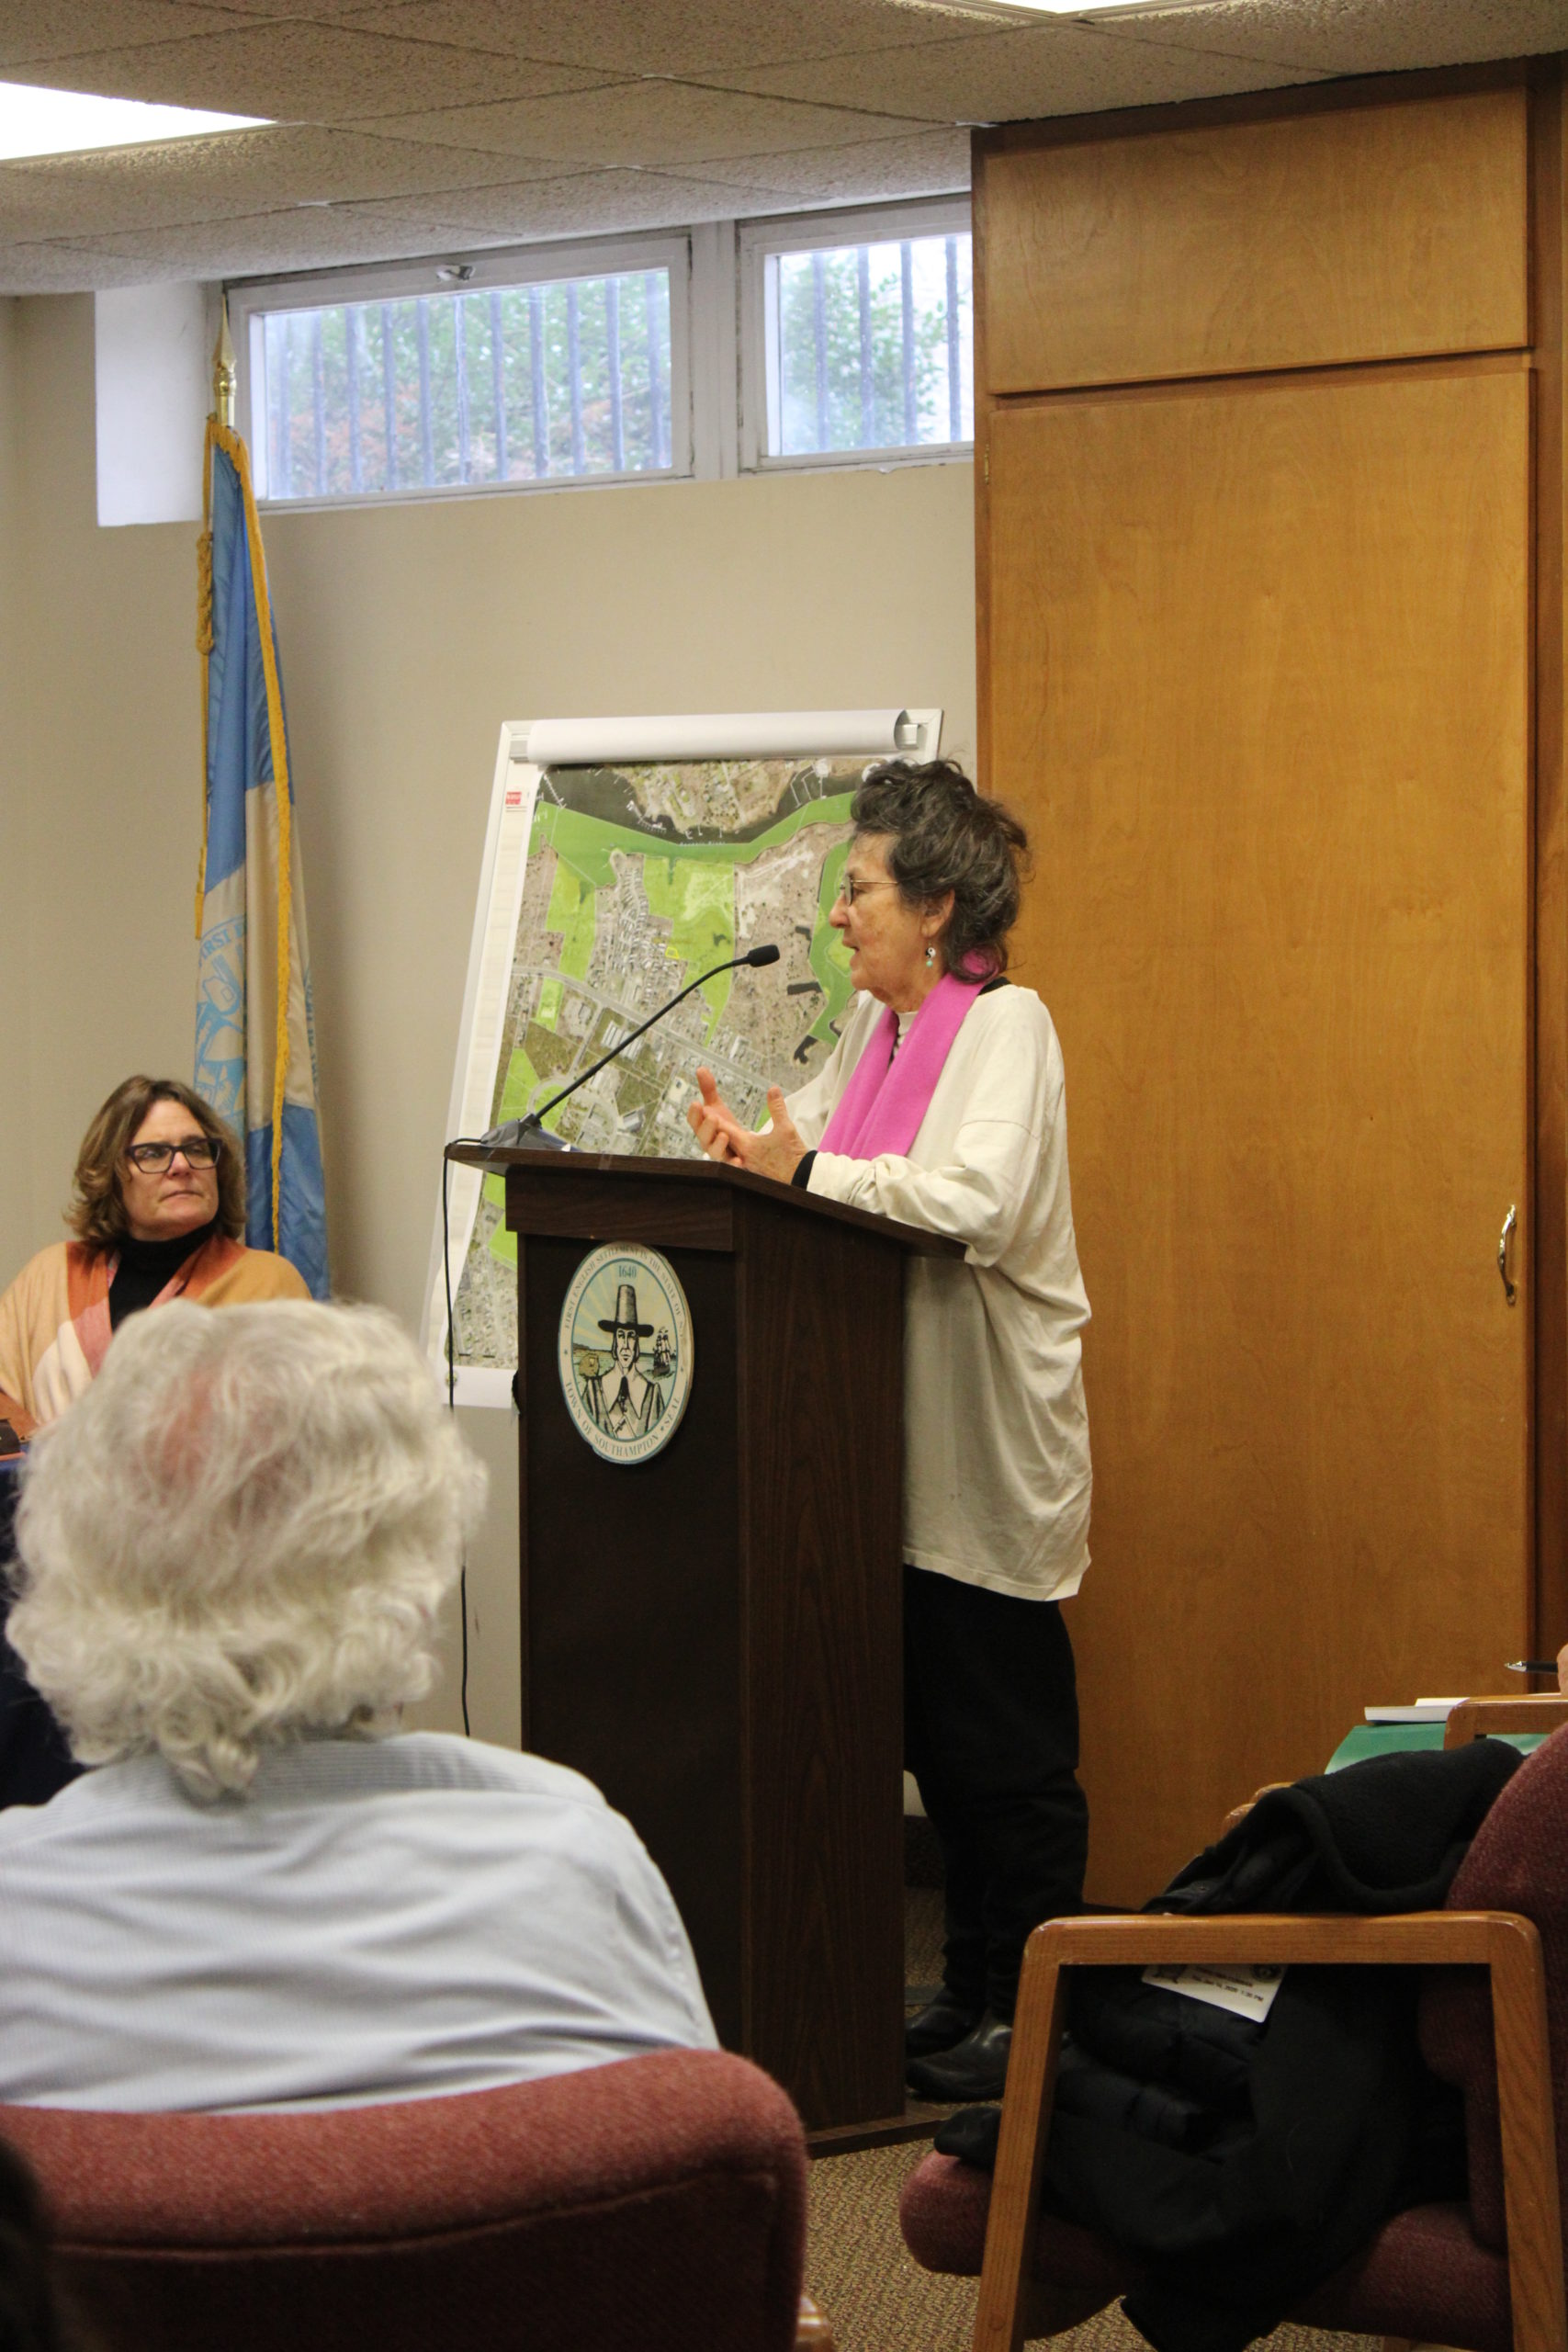 Tina Curran addressed the town board Tuesday afternoon about her feelings concerning the proposed home built on Sugar Loaf.